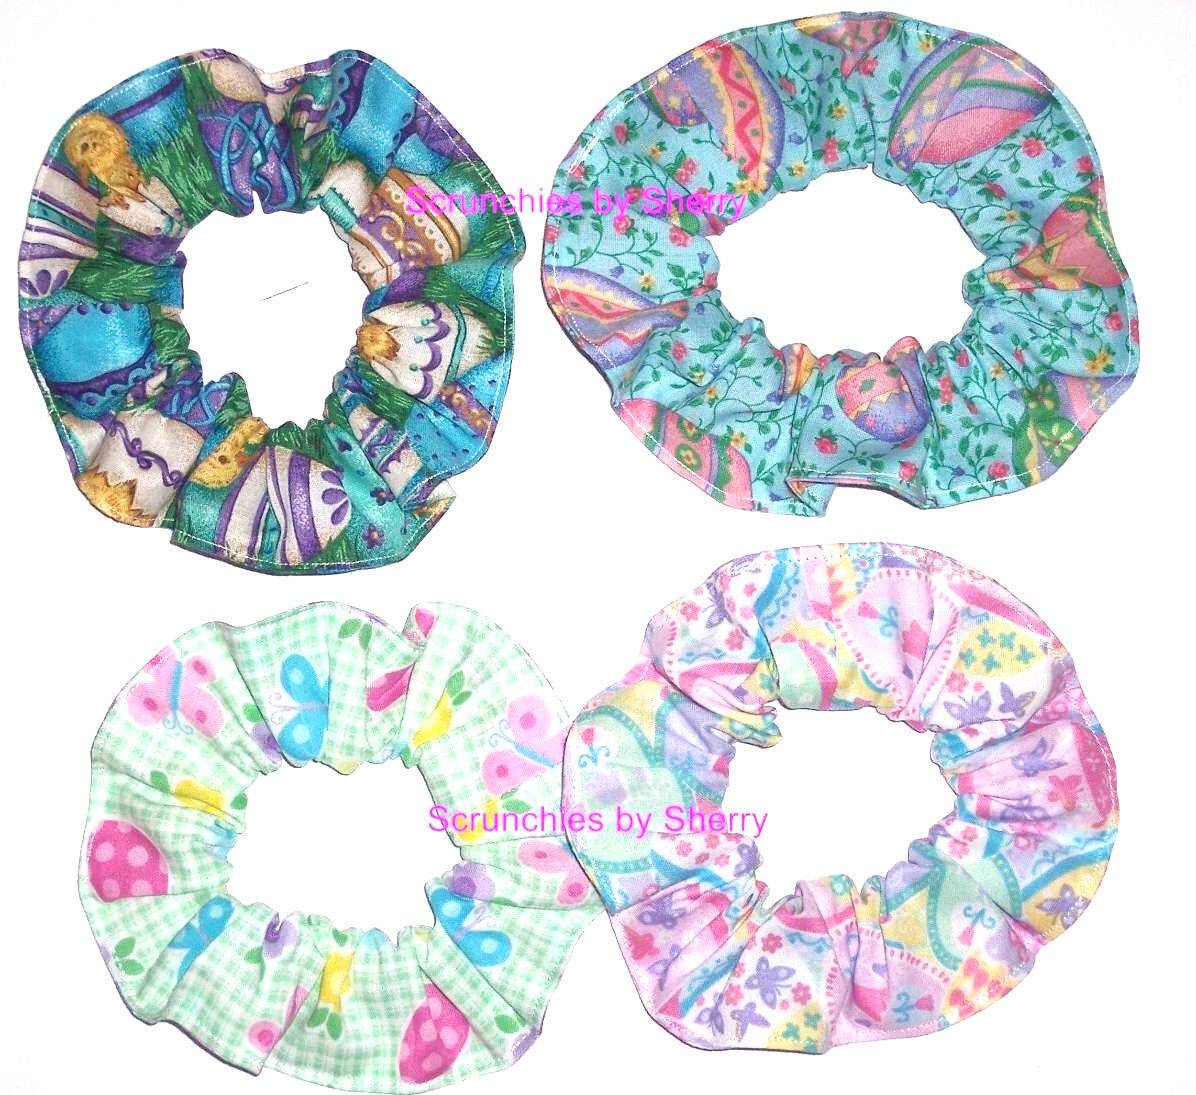 Easter Scrunchie M&M Eggs Chicks Hair Scrunchies by Sherry Ties Ponytail Holder  - $6.99 - $9.99